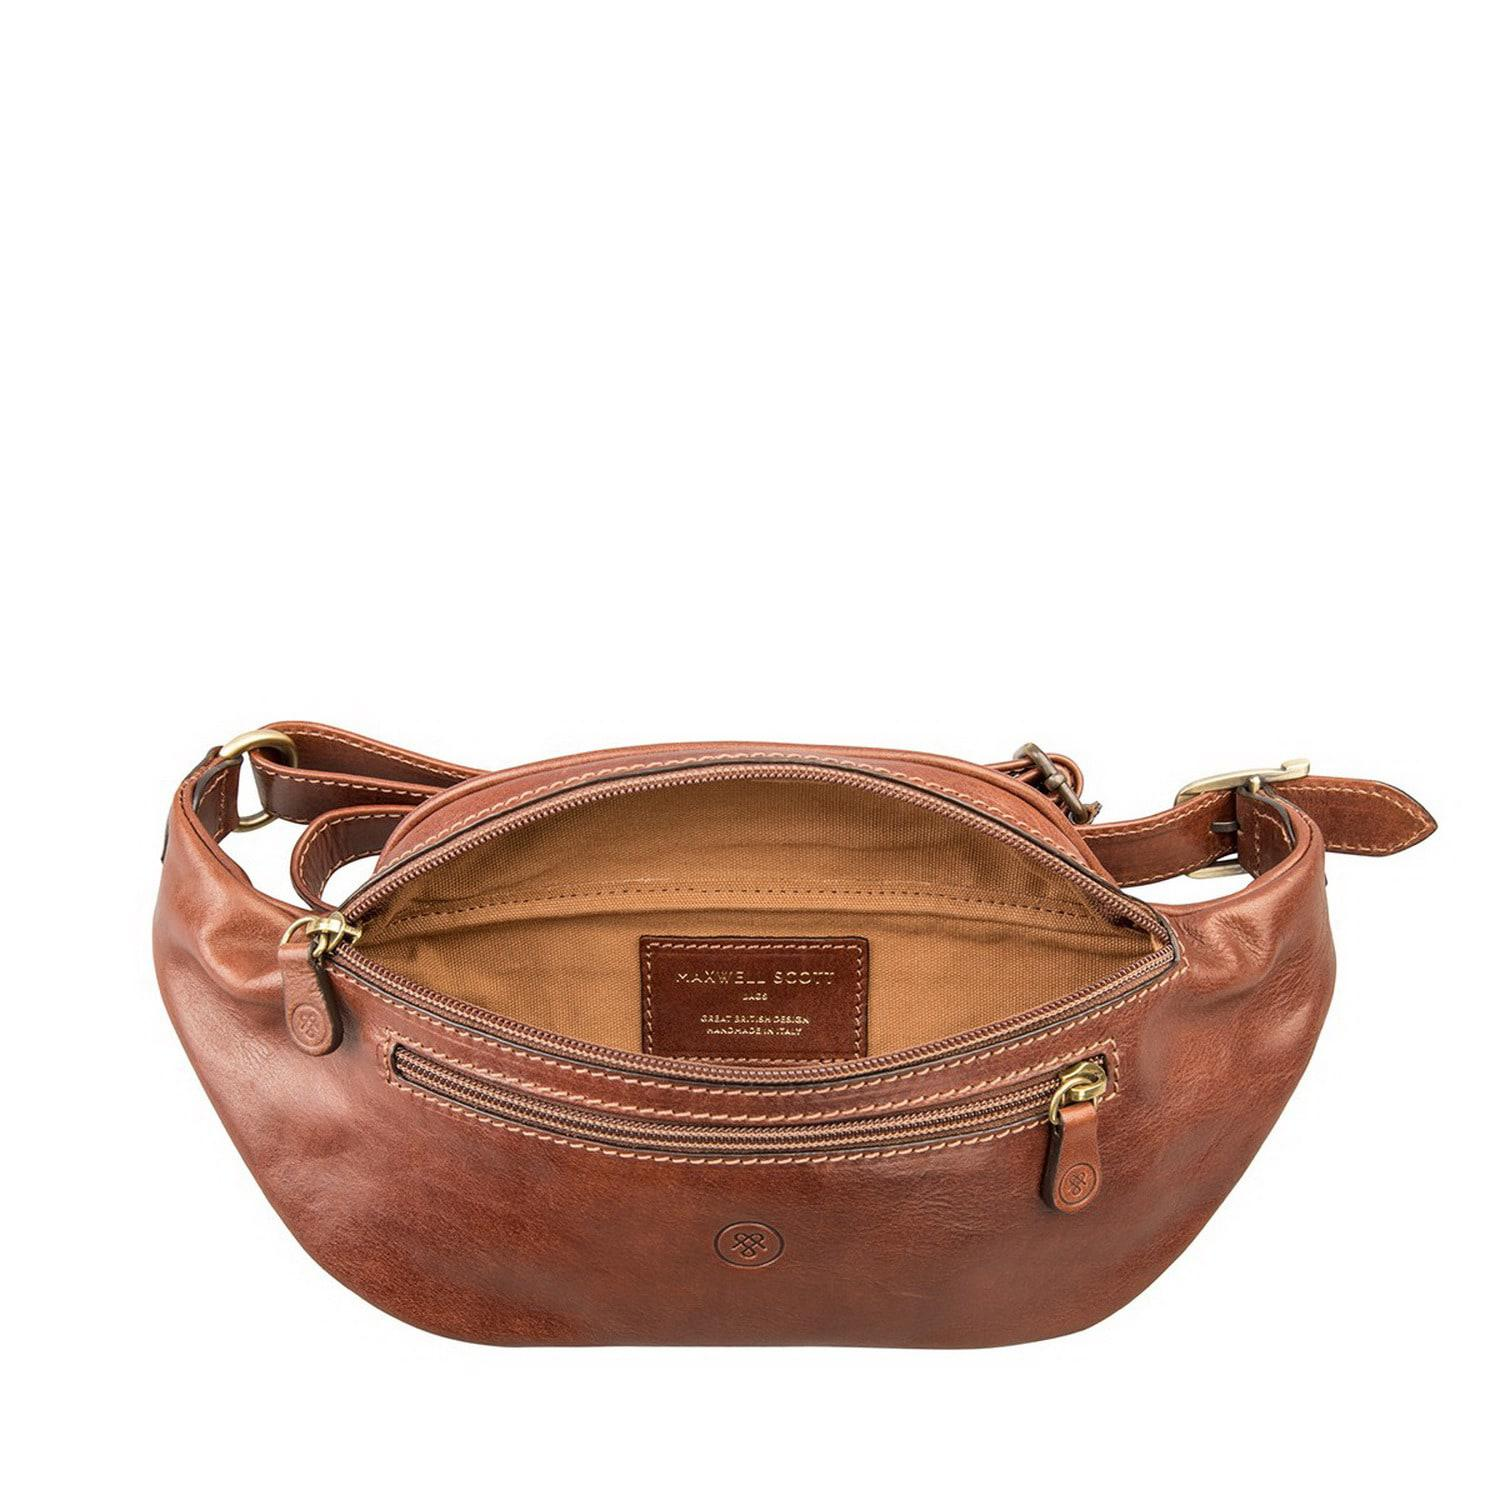 Maxwell Scott Bags Luxury Leather Chestnut Tan Bum Bag